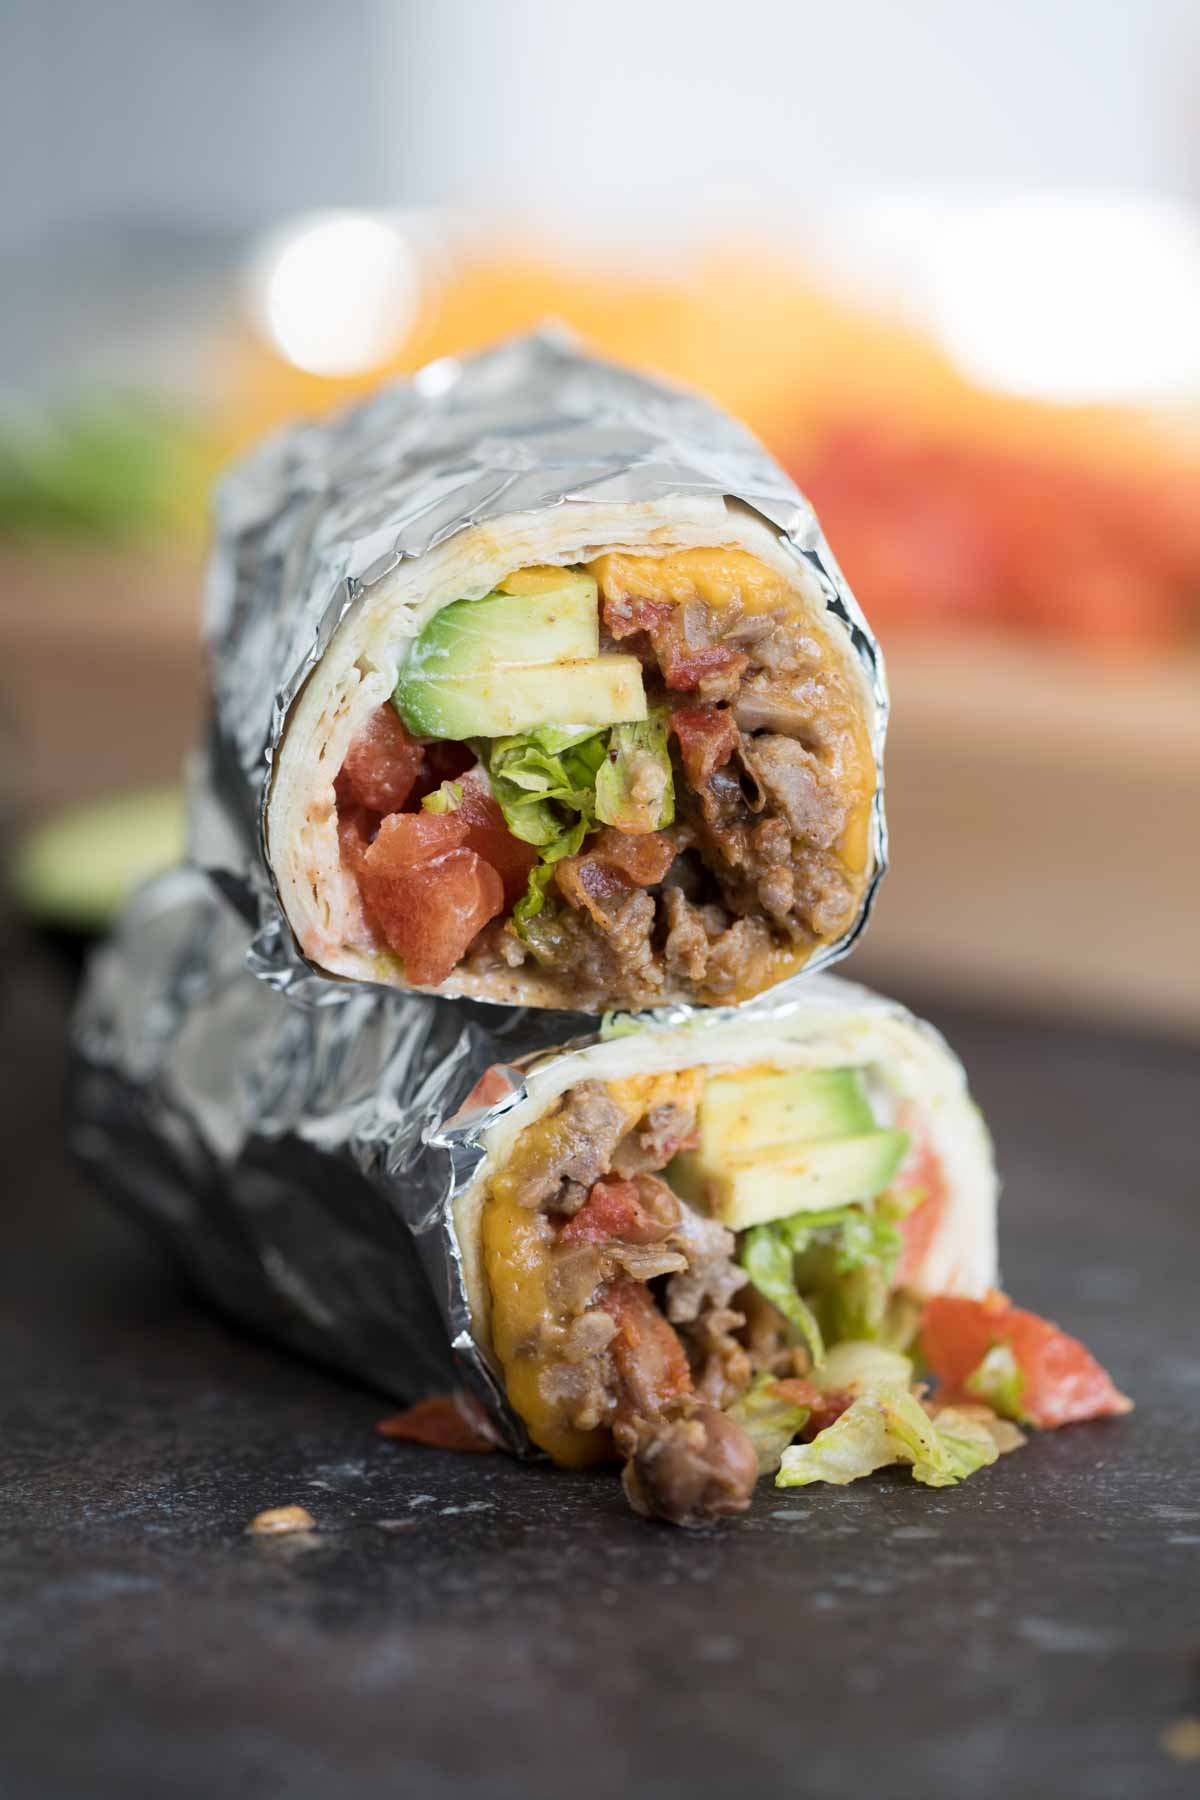 Easy Bean, Sausage and Beef Burrito Recipe - Taste and Tell